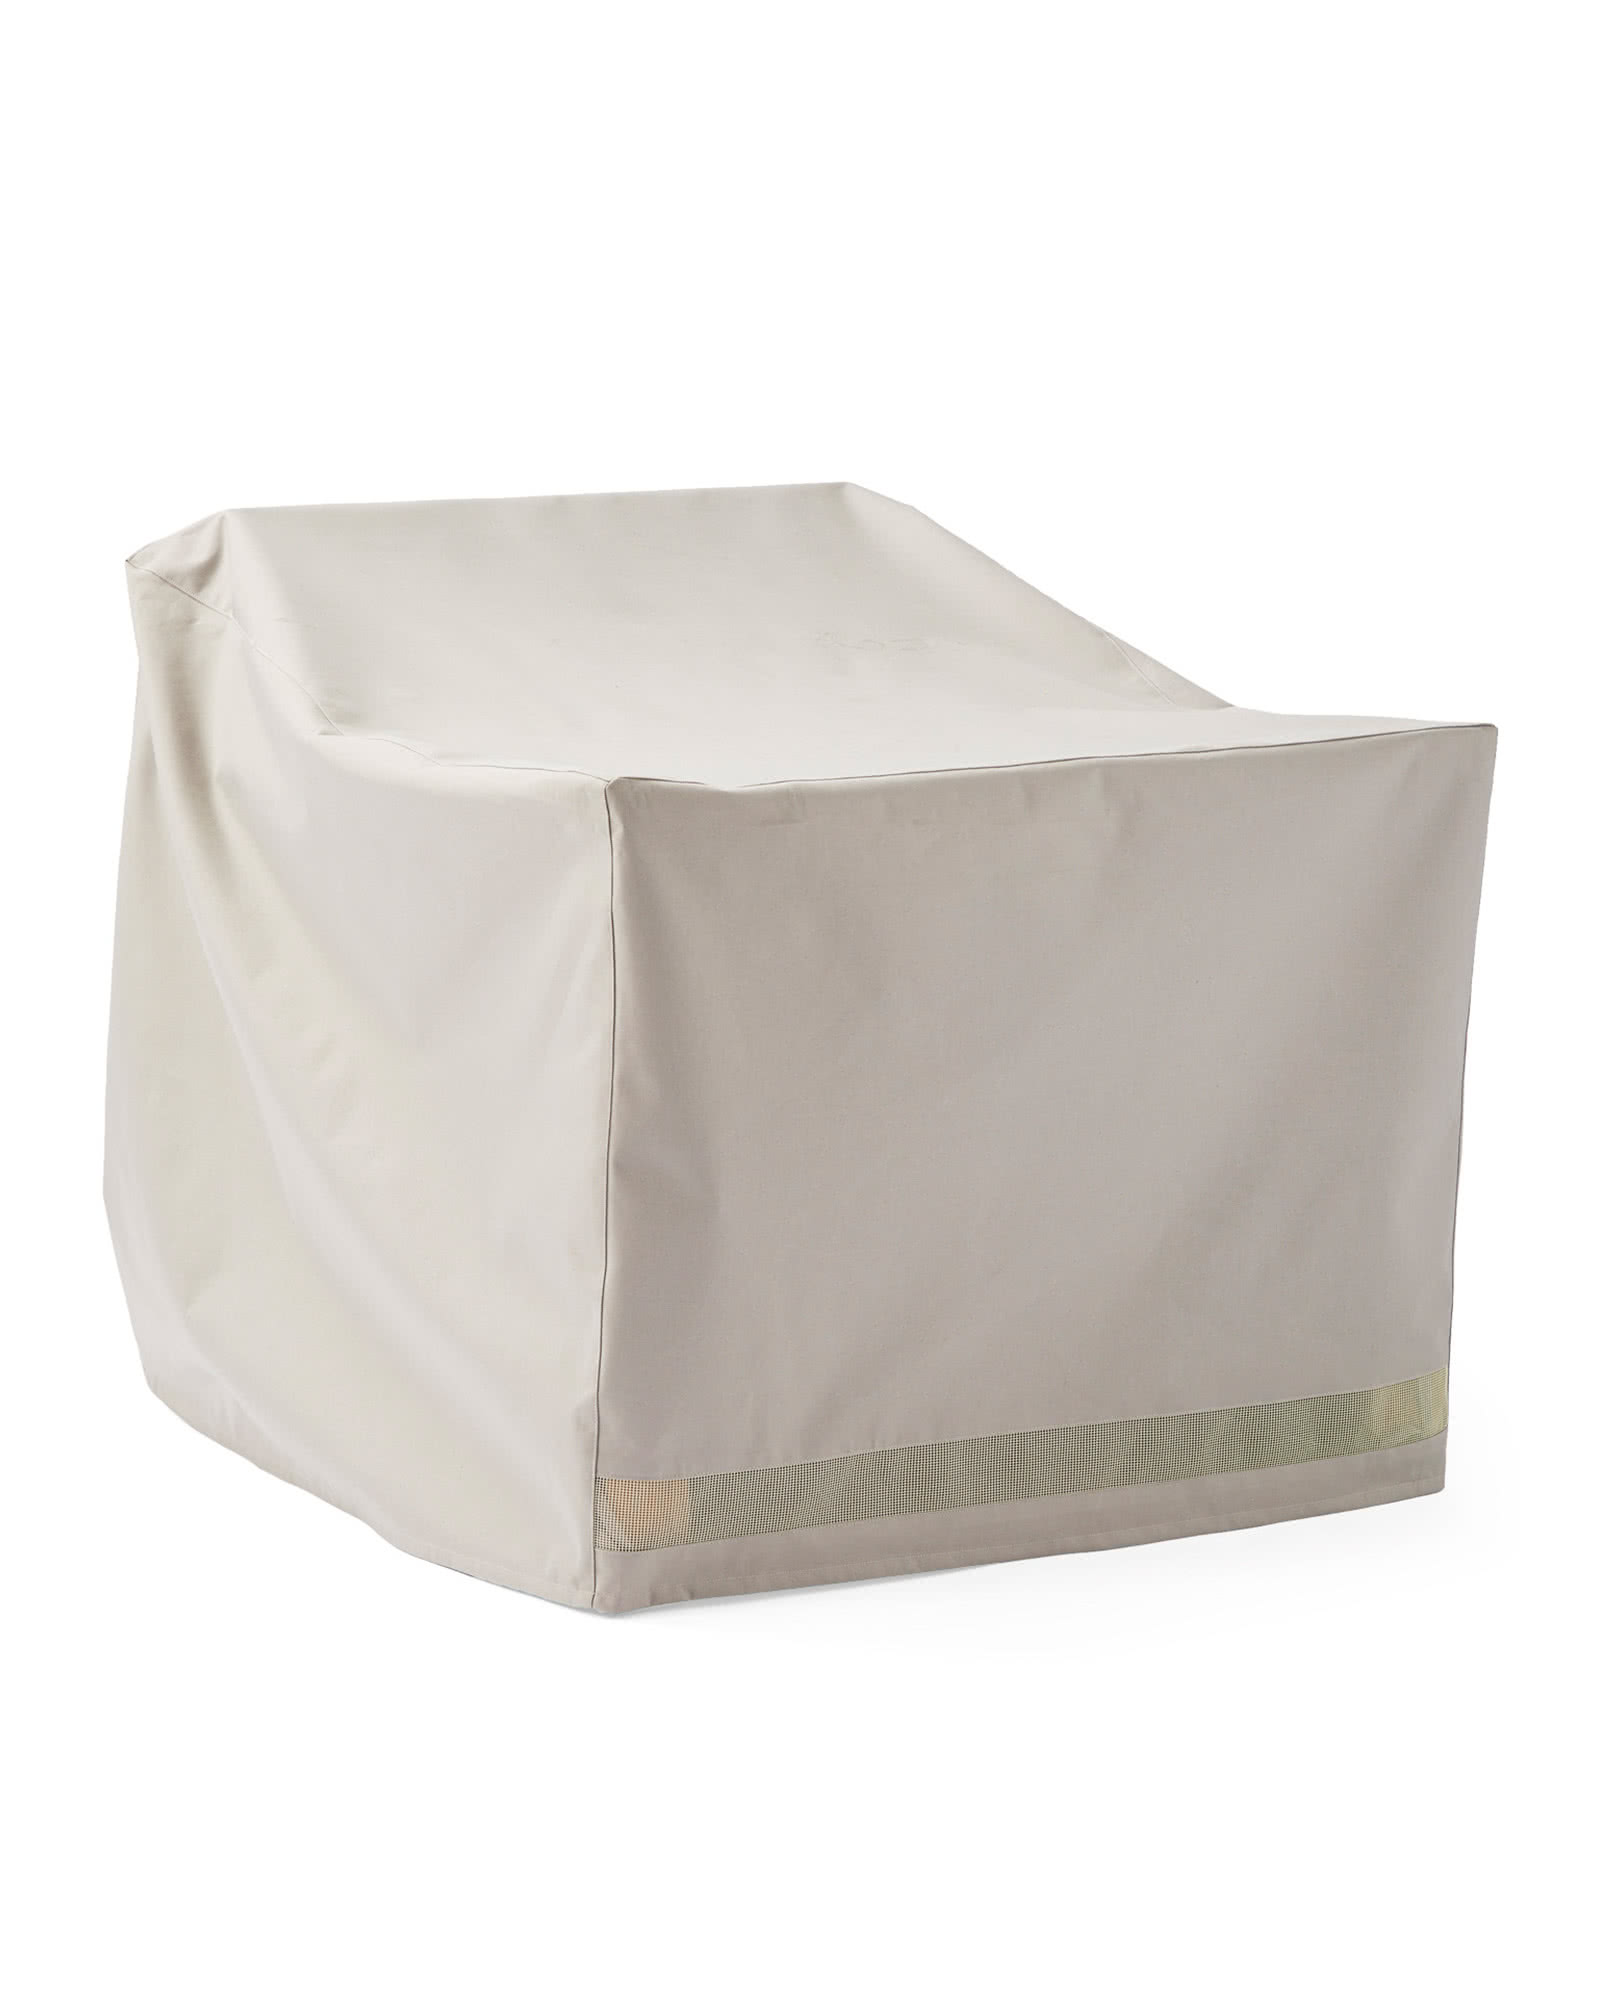 Protective Cover - Cliffside Chair,